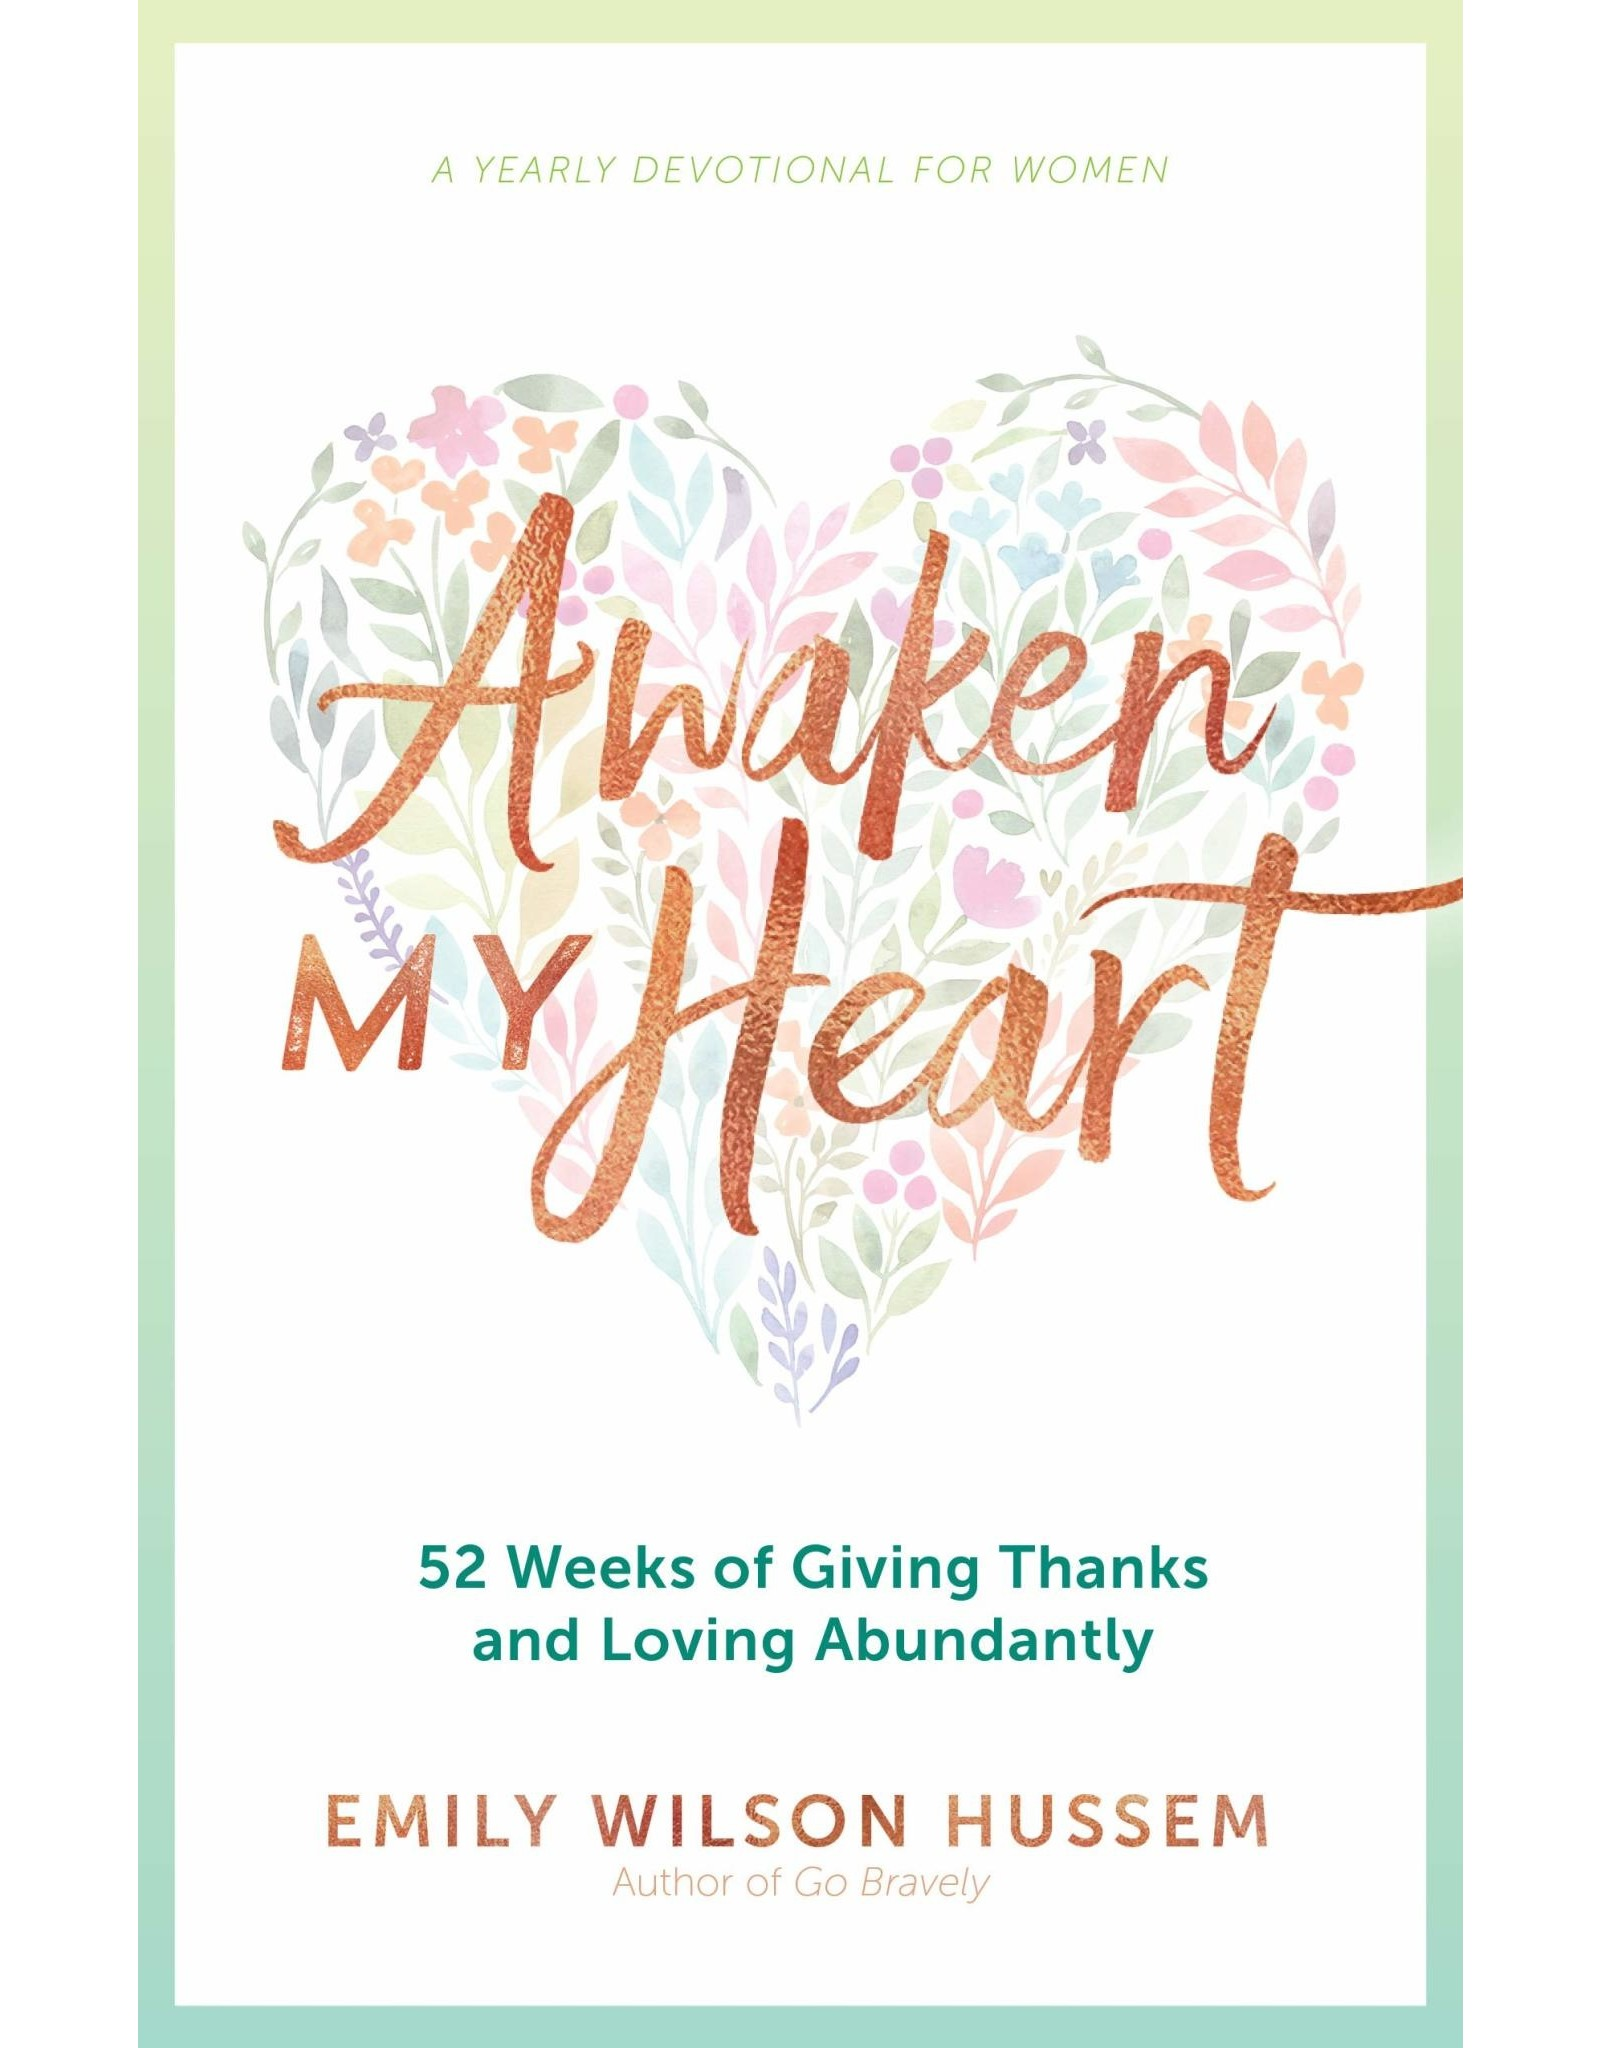 Awaken My Heart: 52 Weeks of Giving Thanks & Loving Abundantly